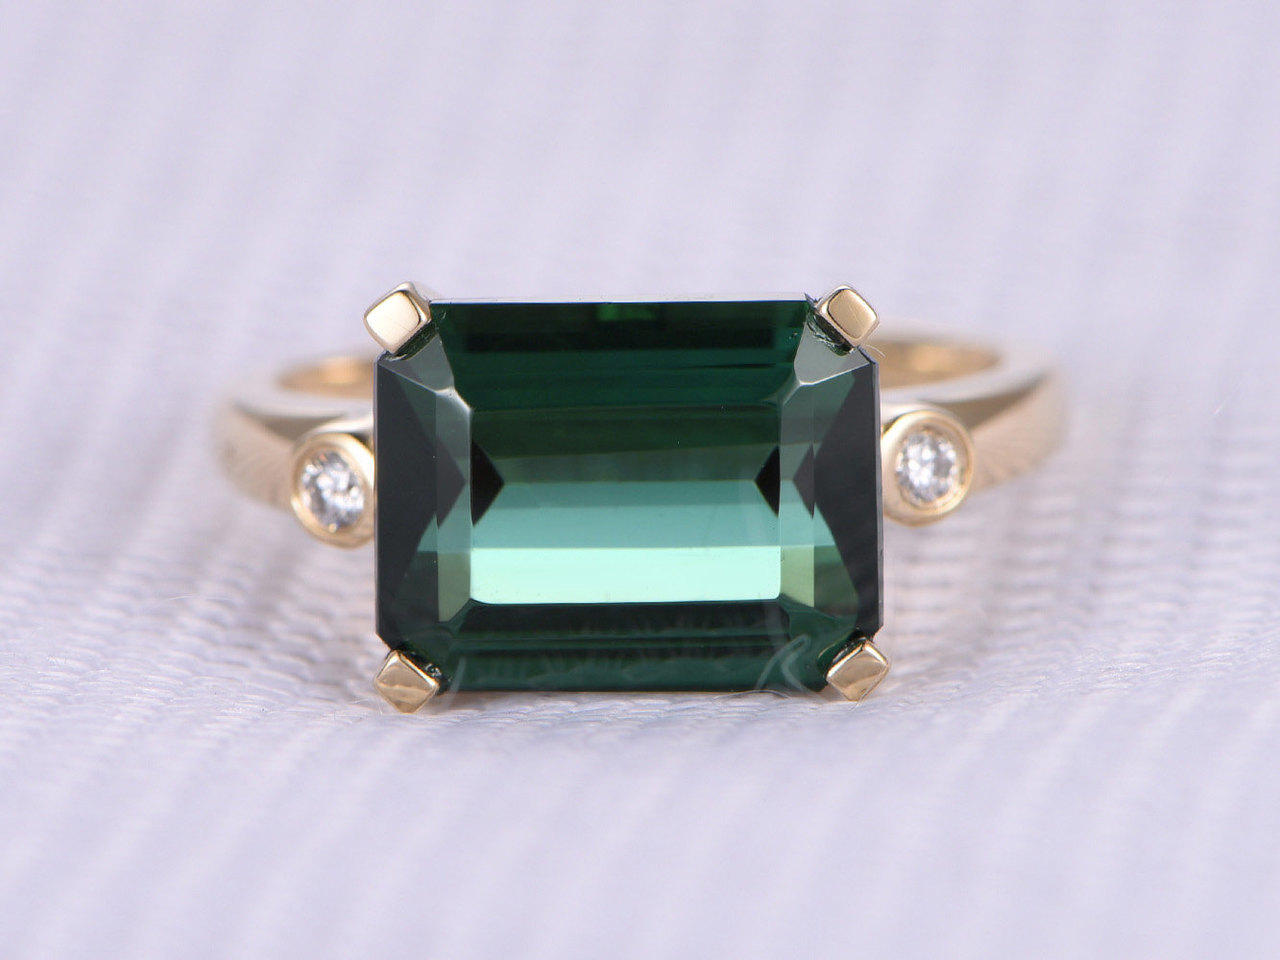 3.85ct Green Tourmaline Engagement ring,Emerald Cut stone,14k Rose gold,VS diamond Wedding Band,Bezel Set,Personalized for her/him,Custom